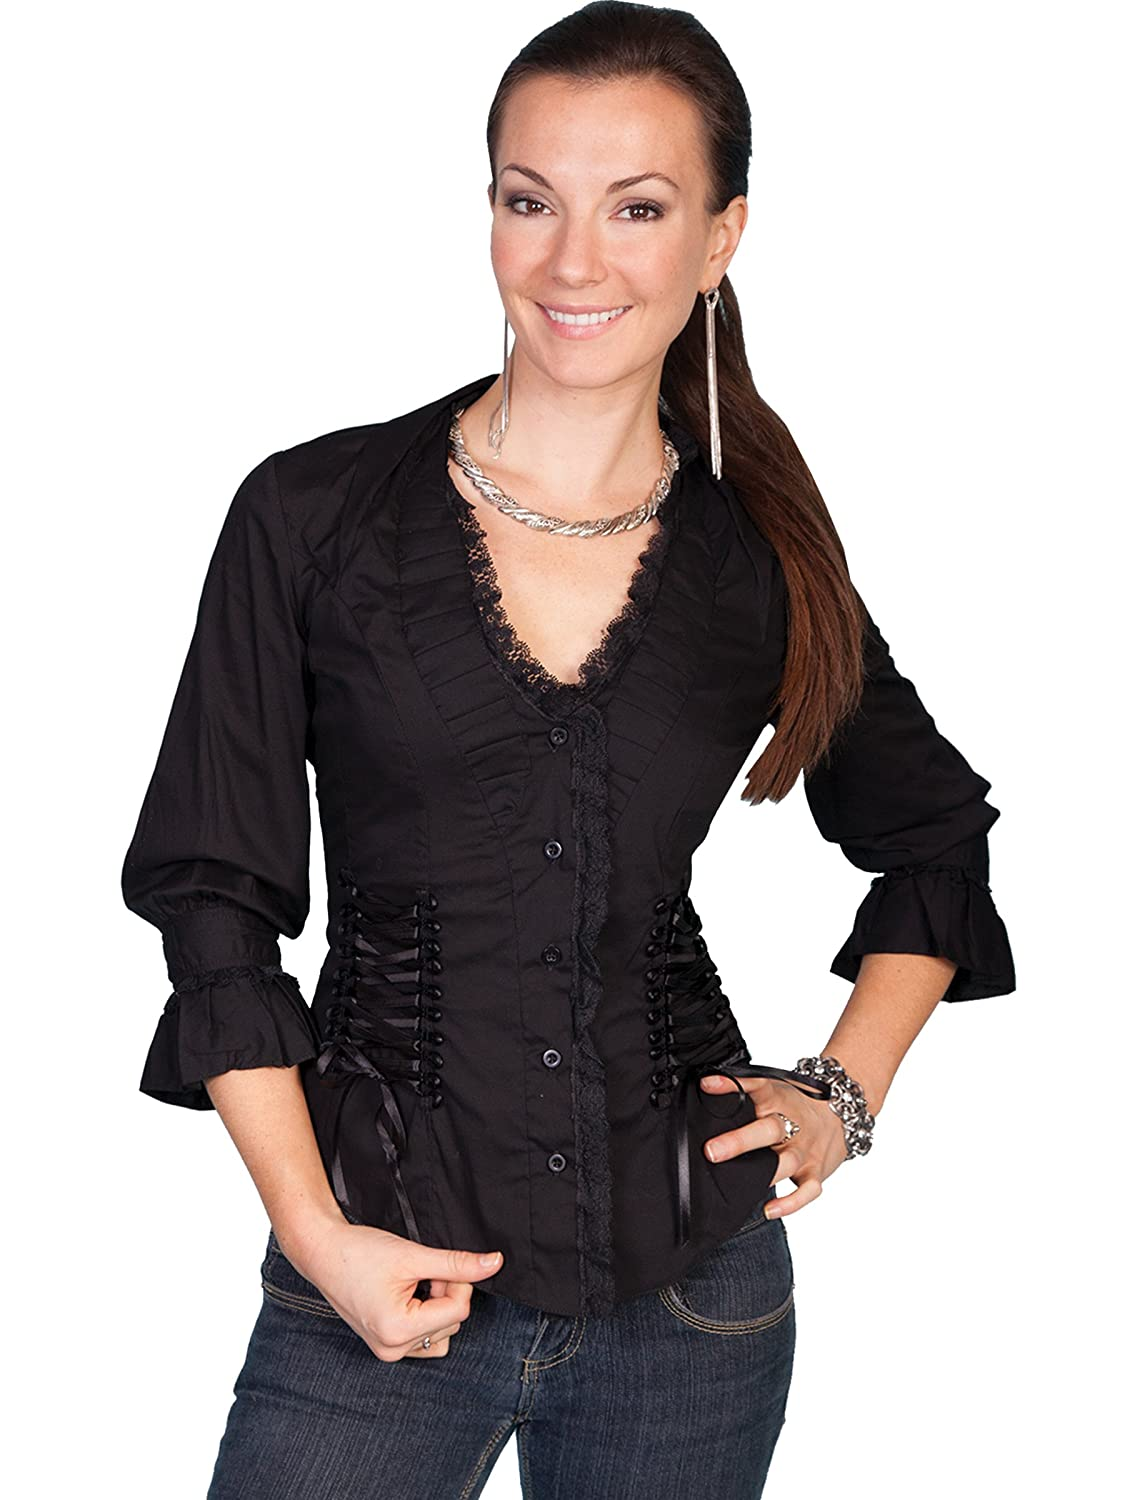 Steampunk Tops | Blouses, Shirts Scully Womens Lace Up Back 3/4 Length Top $76.75 AT vintagedancer.com